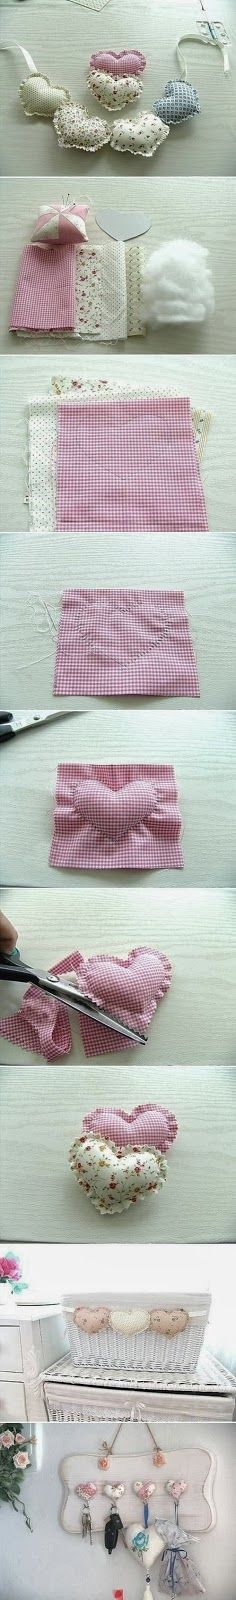 DIY Heart Decor Pictures, Photos, and Images for Facebook, Tumblr, Pinterest, and Twitter